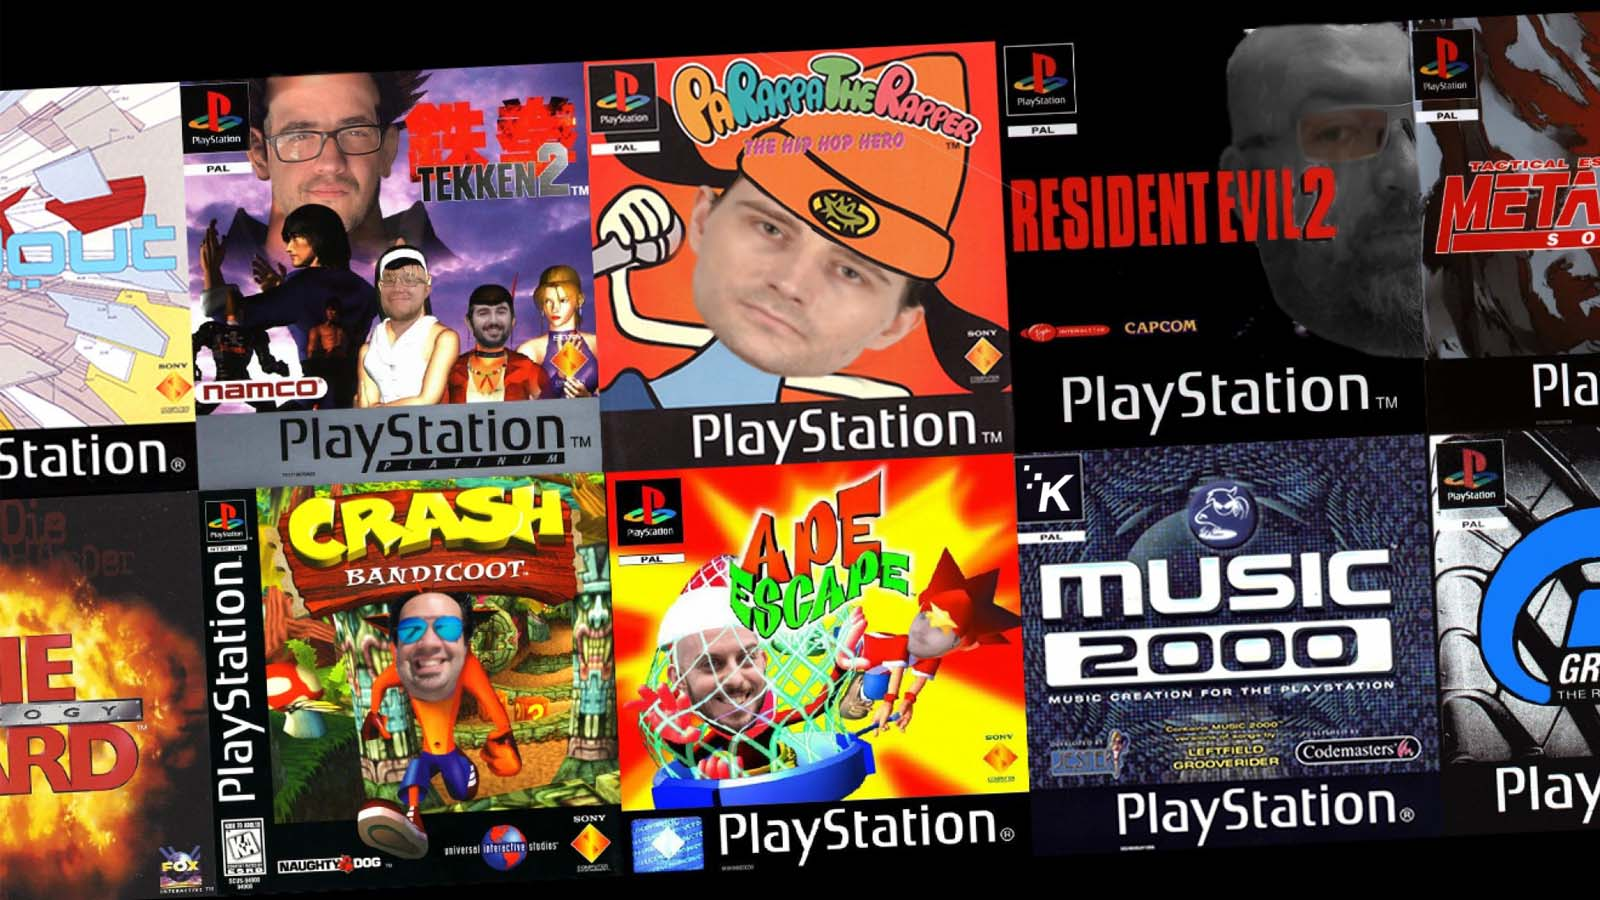 knowtechie roundtable members as playstation 1 games and other gaming